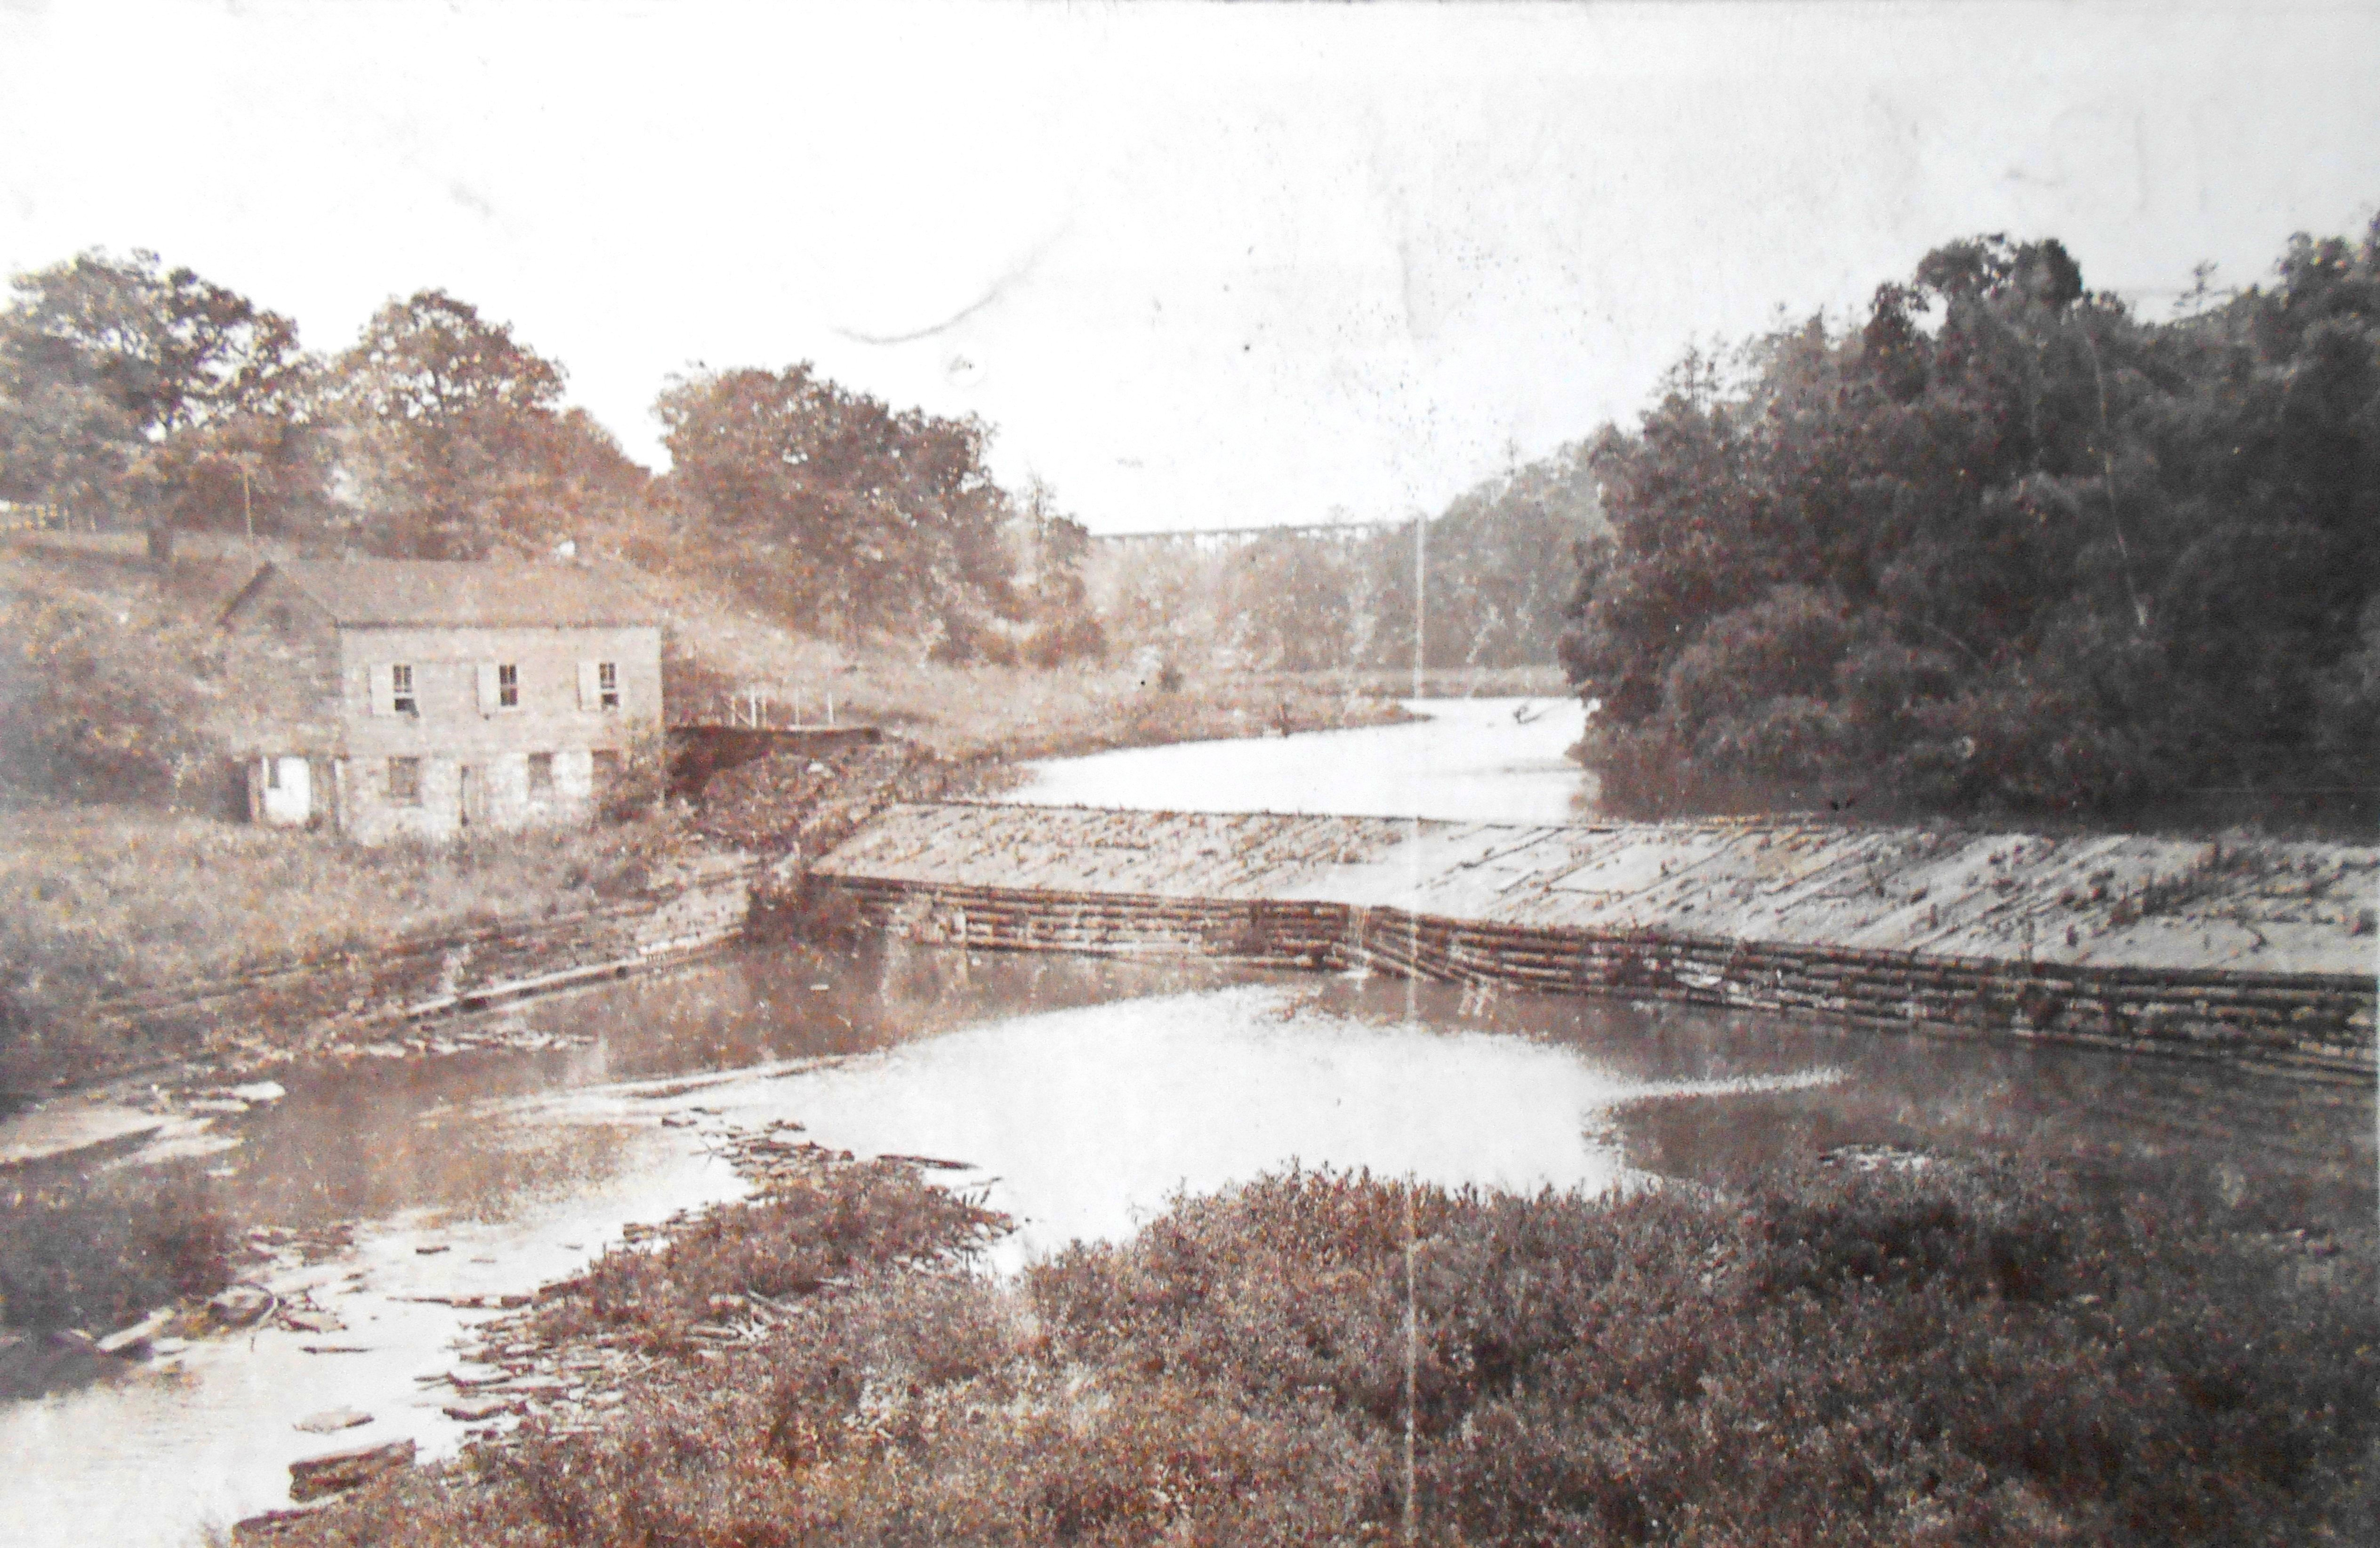 Dam on Humber River at lambton Mills - 1912